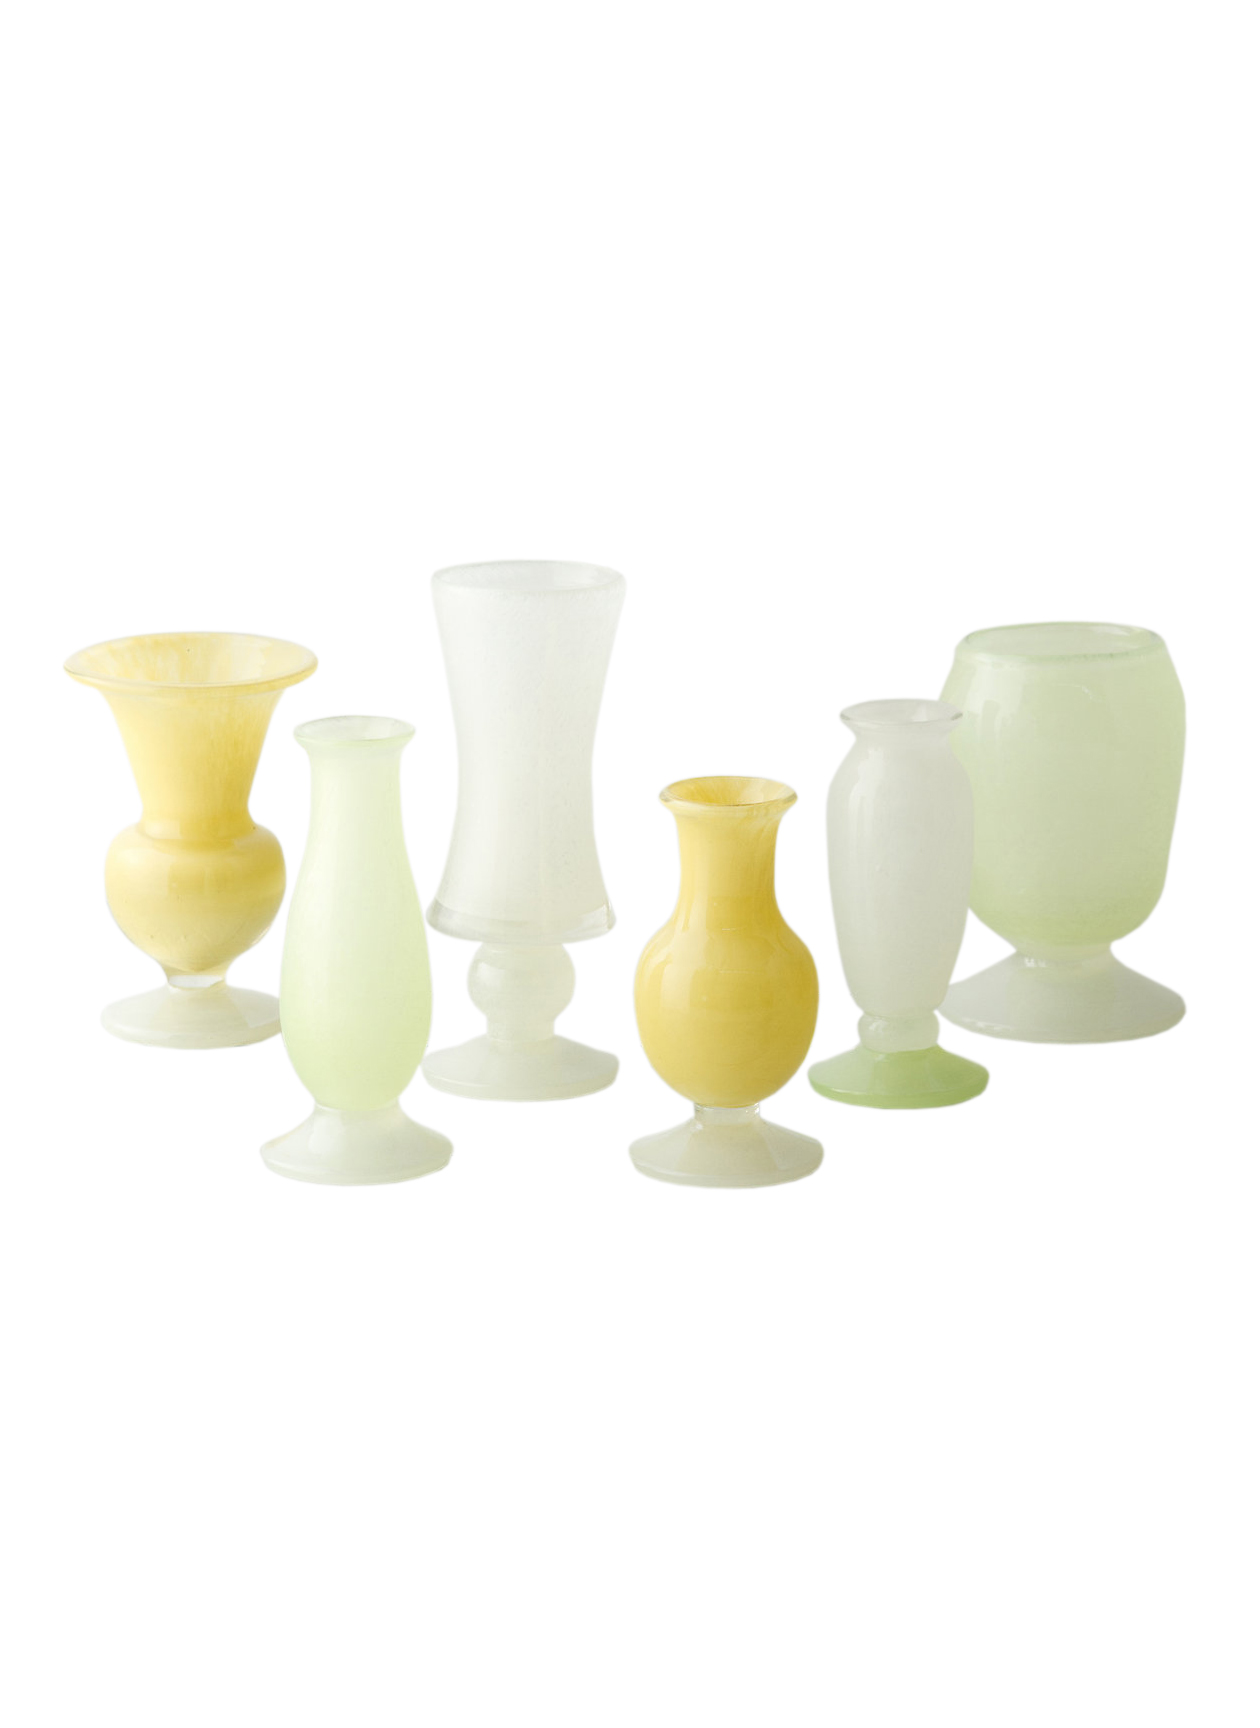 Frosted Citrus Vase Collection